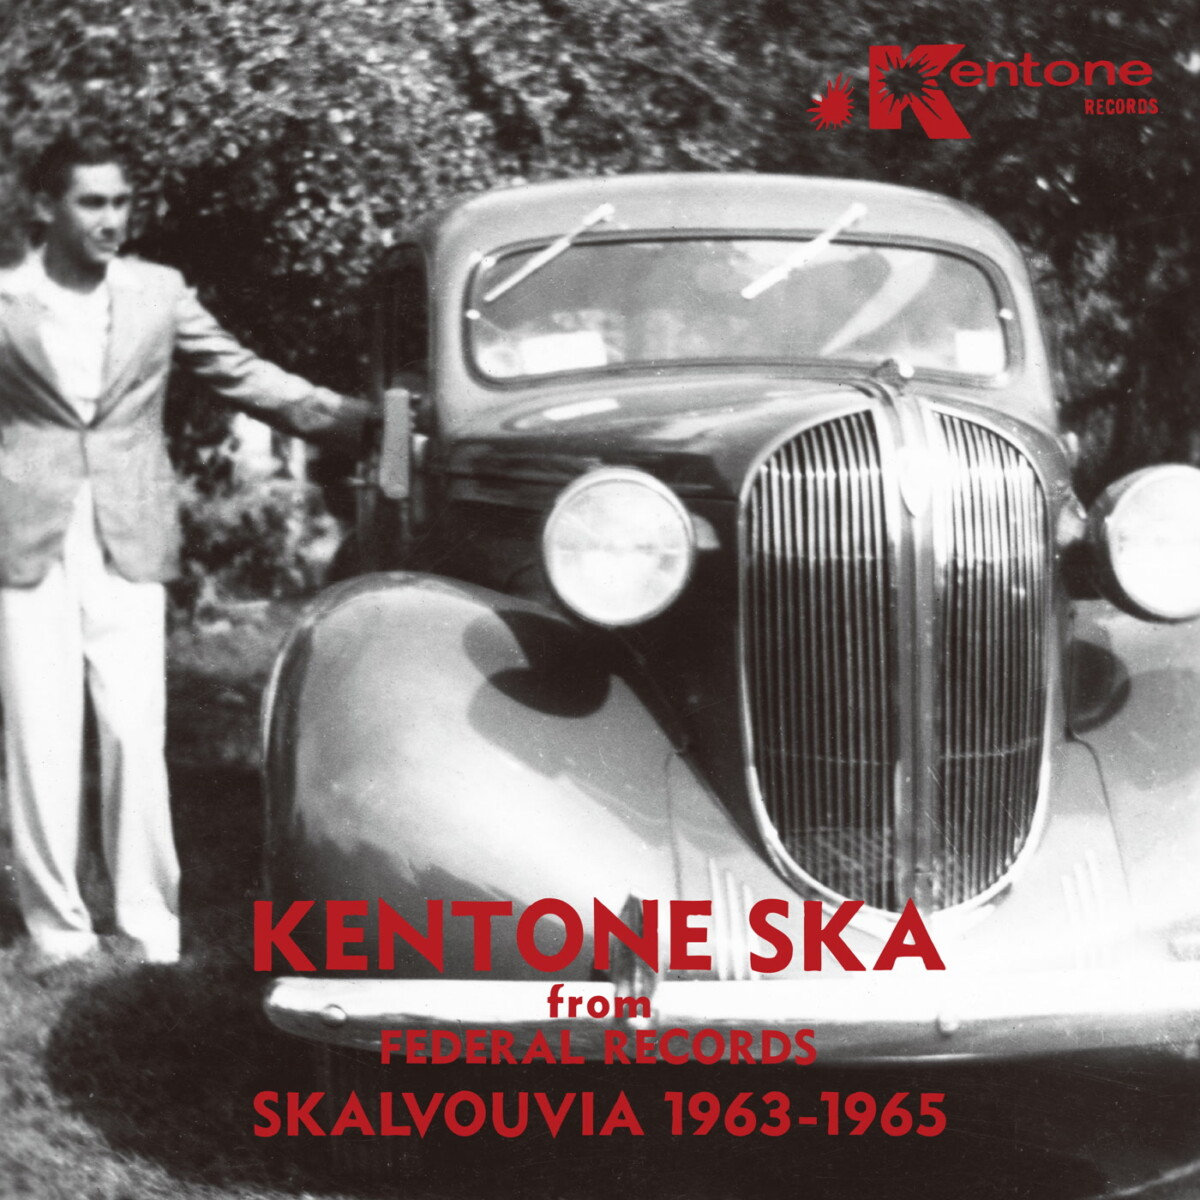 Kentone-Ska-from-Federal-Records-Skalvouvia-1963-1965-Various-Artists.jpg